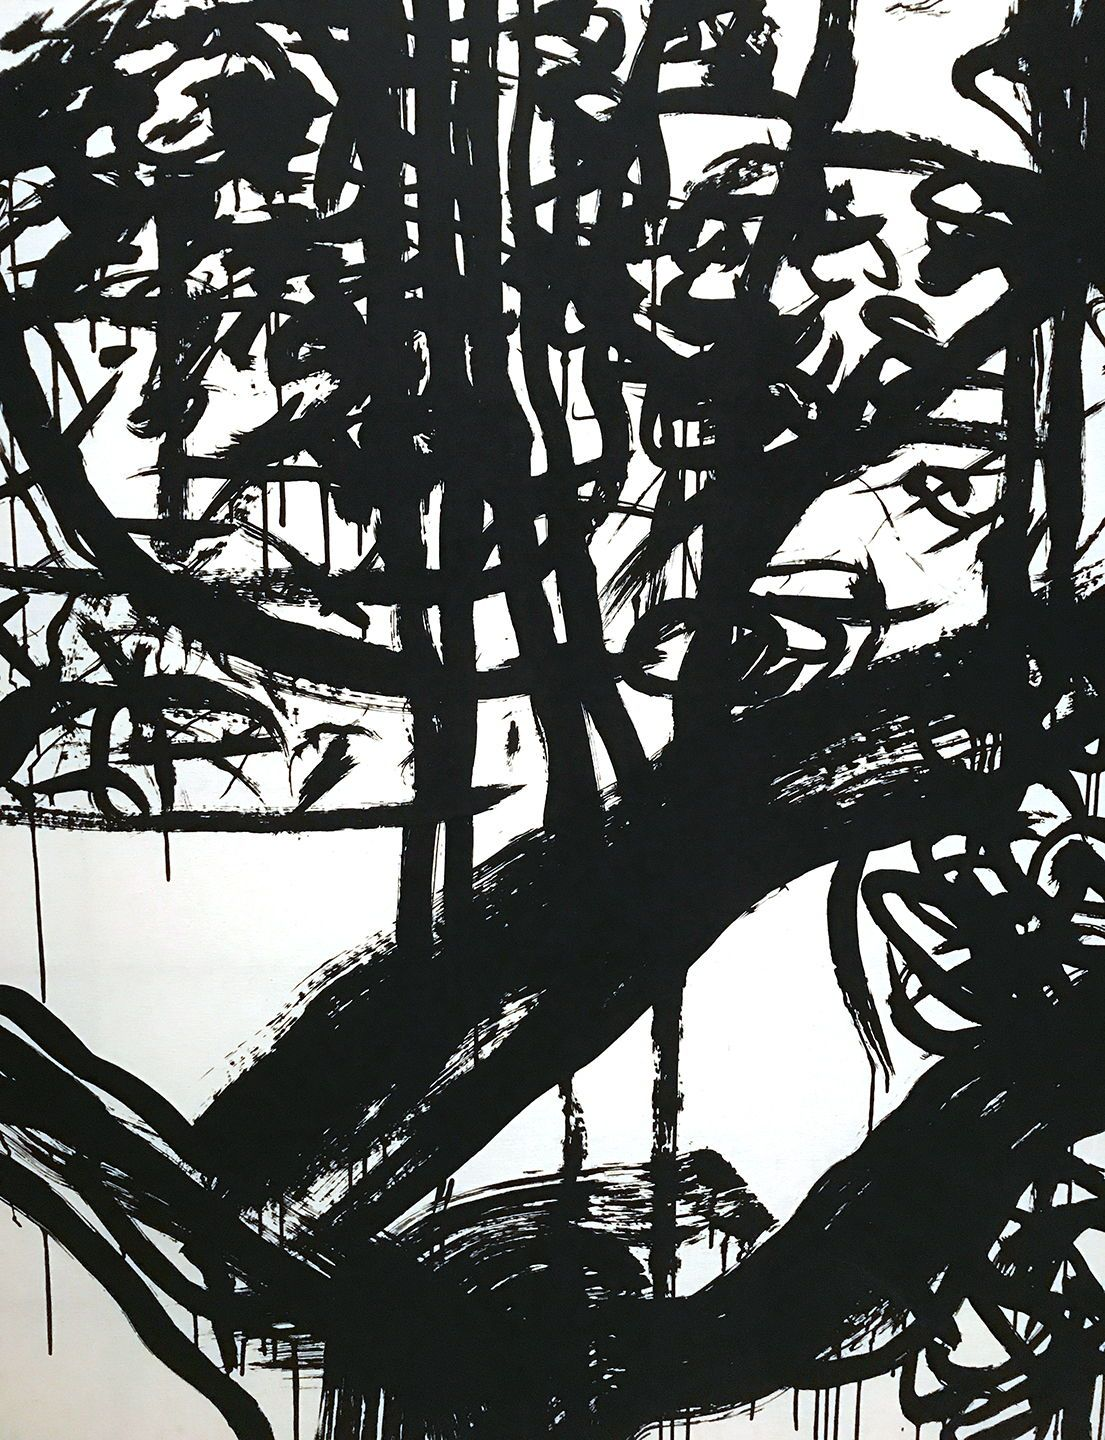 Pat steir abstract black and white abstract paper drawing